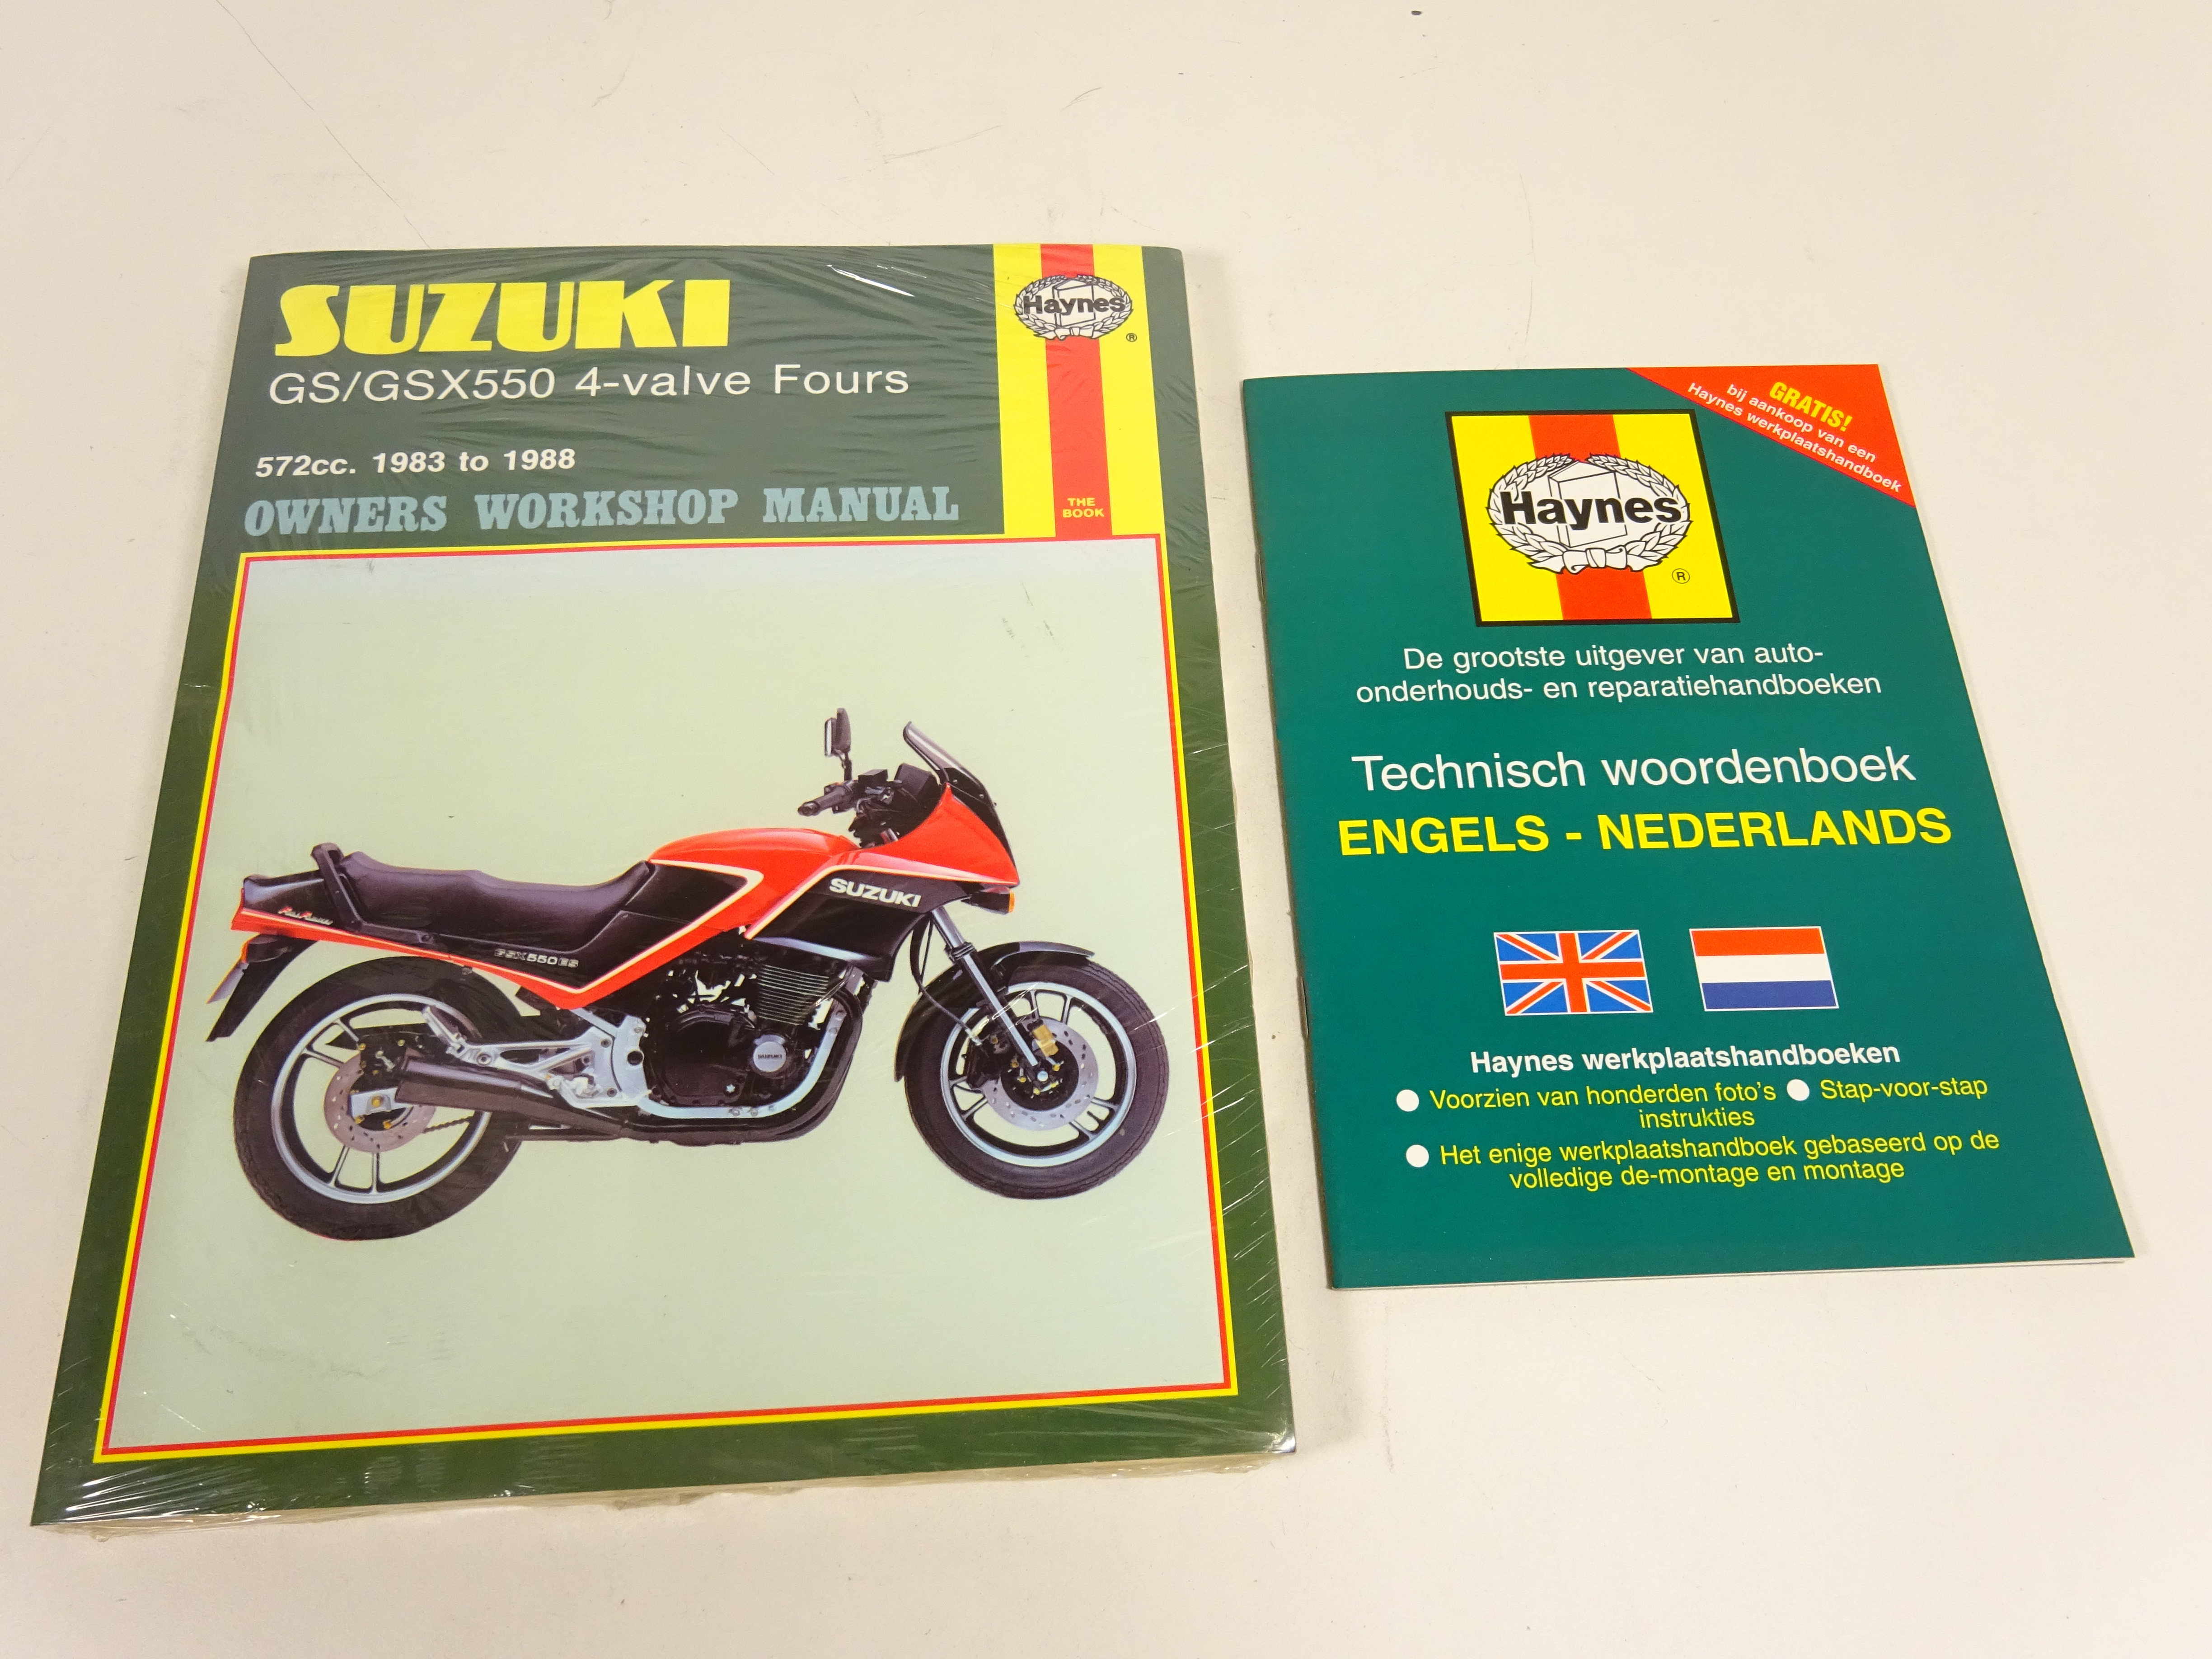 instruction manual suzuki gsx 550 ef 1982 1989 201308569 rh motorparts online com suzuki gsx 550 ef eu es service manual suzuki gsx 550 ef service manual